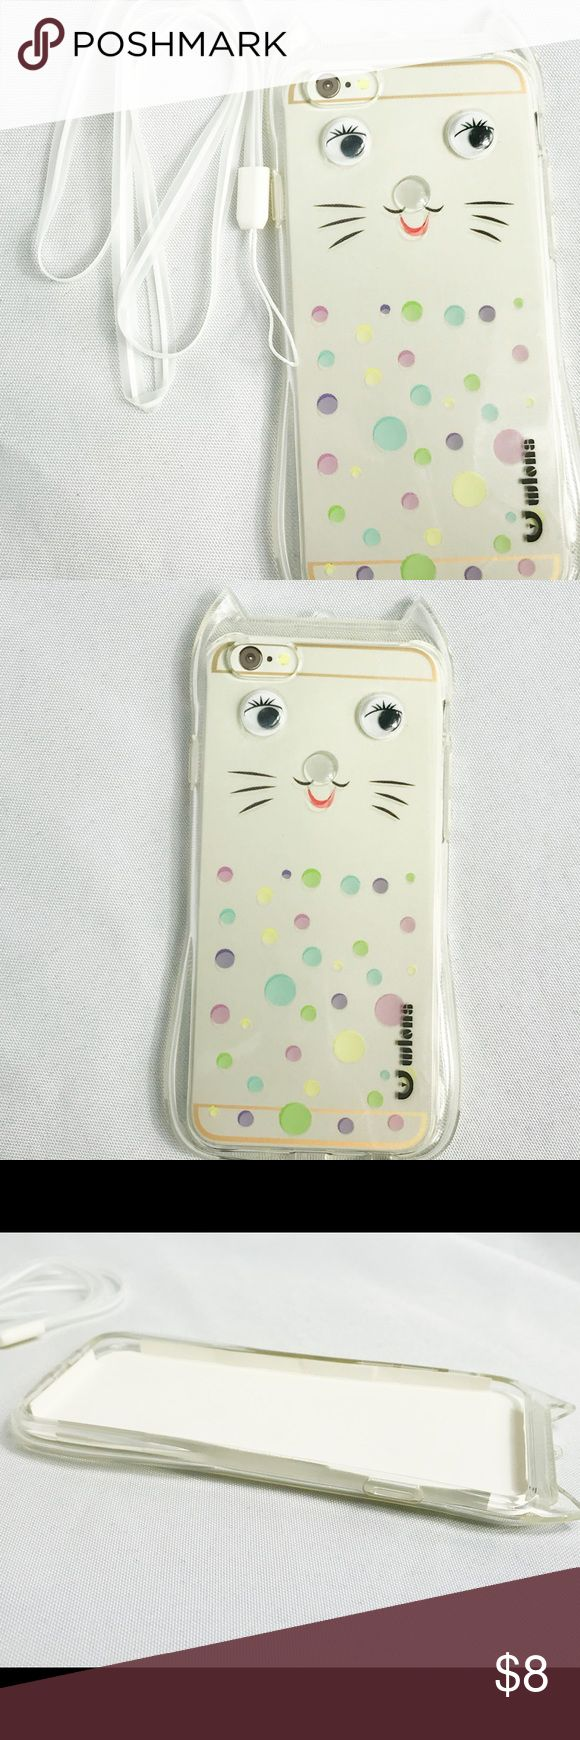 Pretty Cute Kitty Phone Case Apple iPhone 6 Tired of having a regular cellphone case with no glam or personality? Try this cute kitty iPhone 6 bumper case! The beautiful crystal glam will have your admirers mesmerized! This 3D cover is only available for the iPhone 6. This is the best iPhone 6 cover with free shipping, just in time for Christmas. The silicone material that includes wrist straps protects your Apple iPhone 6 from dirt and dust. Get the best cheap phone cover for a fraction of…